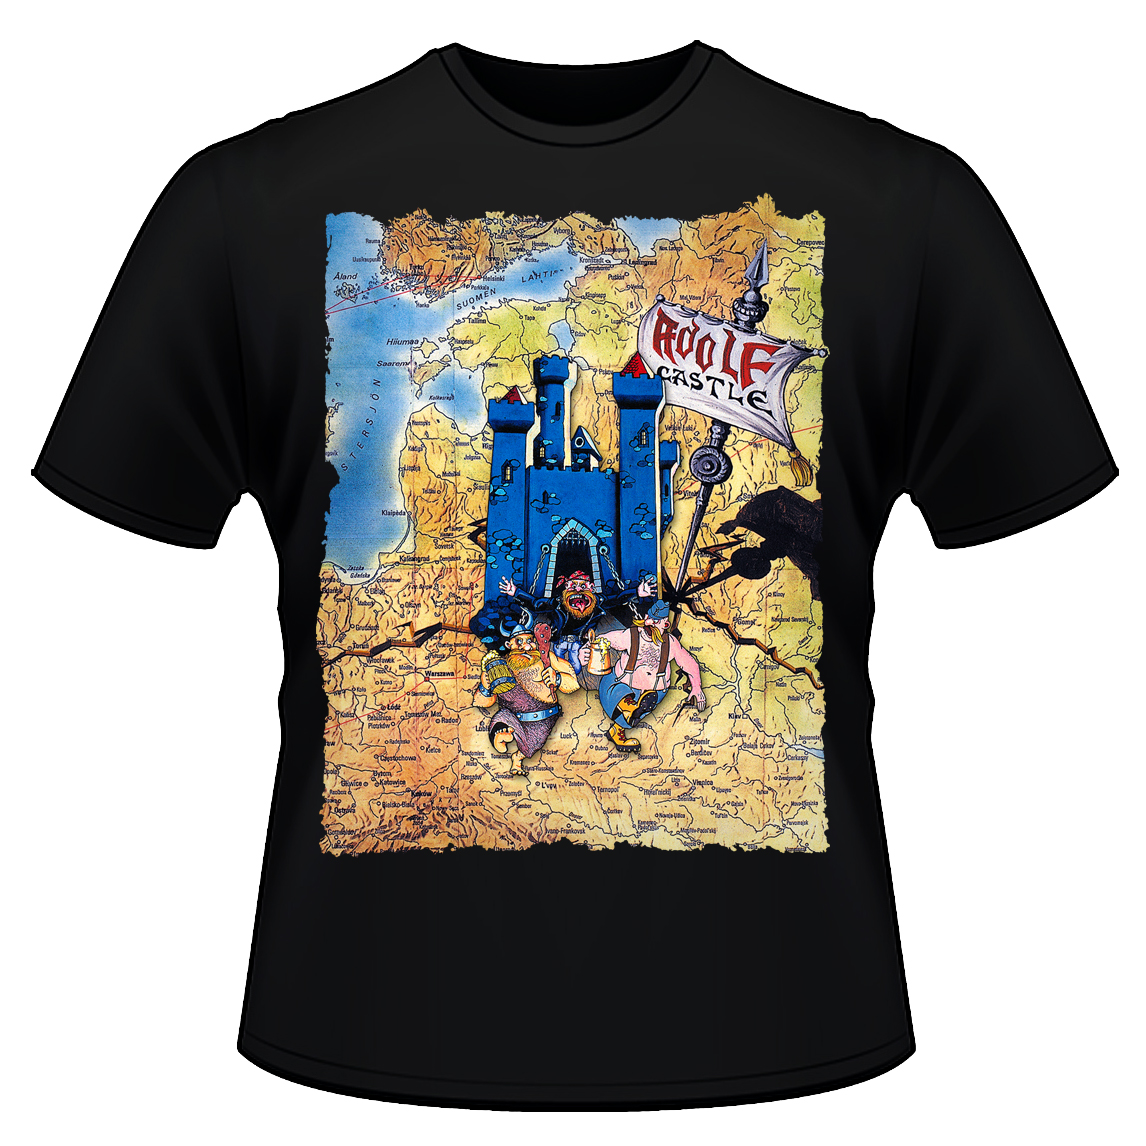 Adolf Castle - (T-Shirt) - Pre-Sale